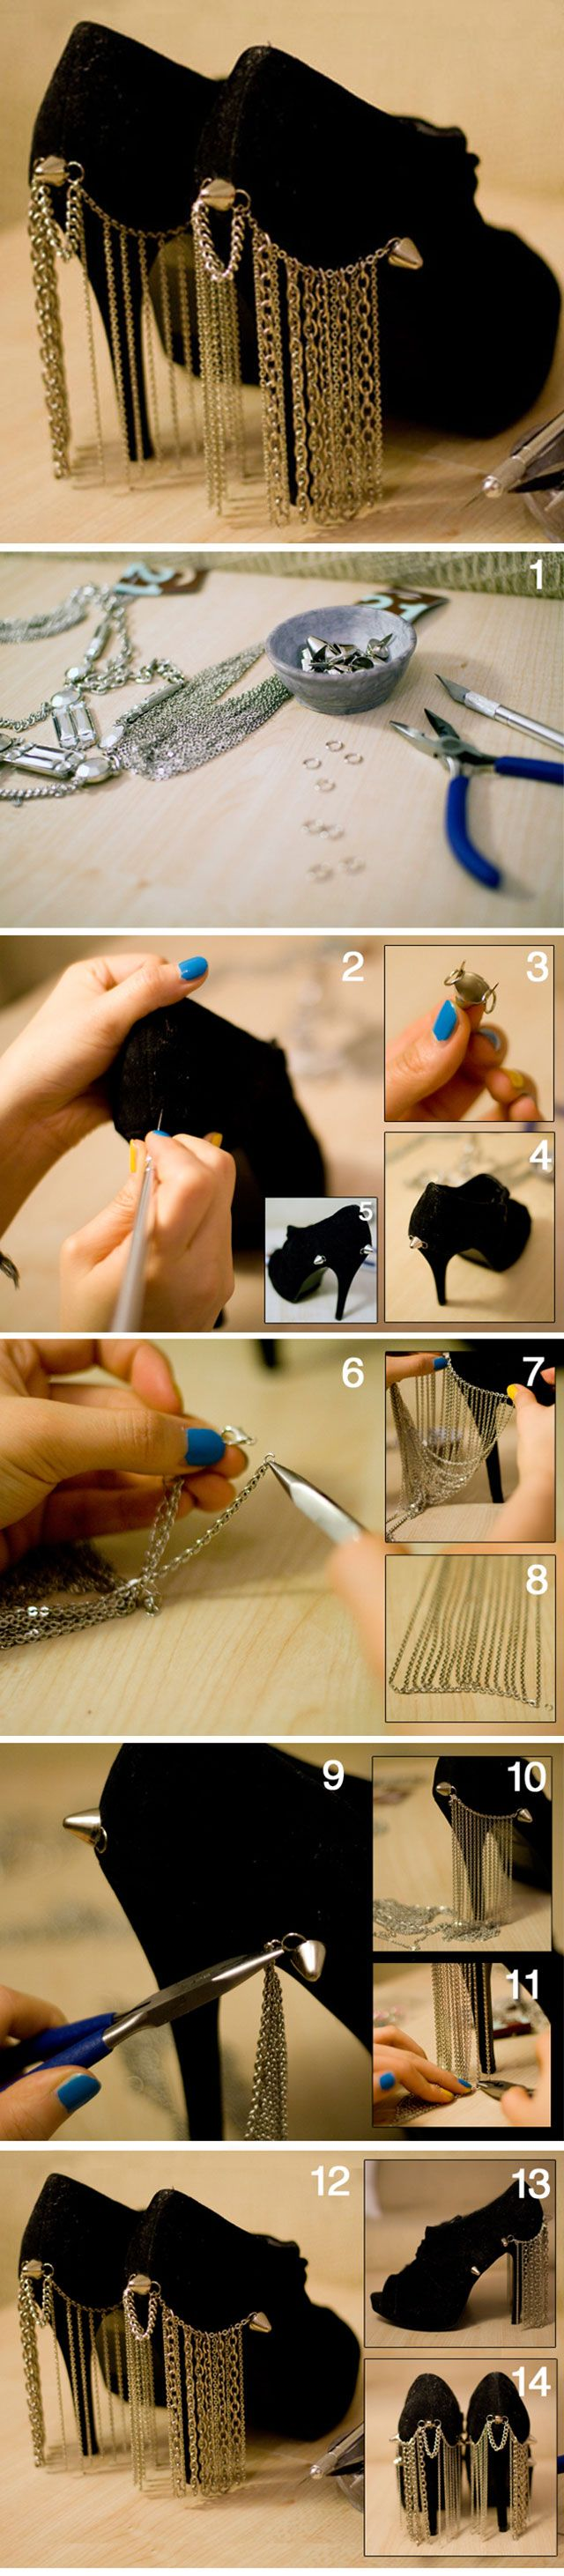 Swesome, DIY for the most expensive looks, must check this out. Even if you are not crafty , YOU CAN DO THESE!!! ANDY MANY MORE!!!!!